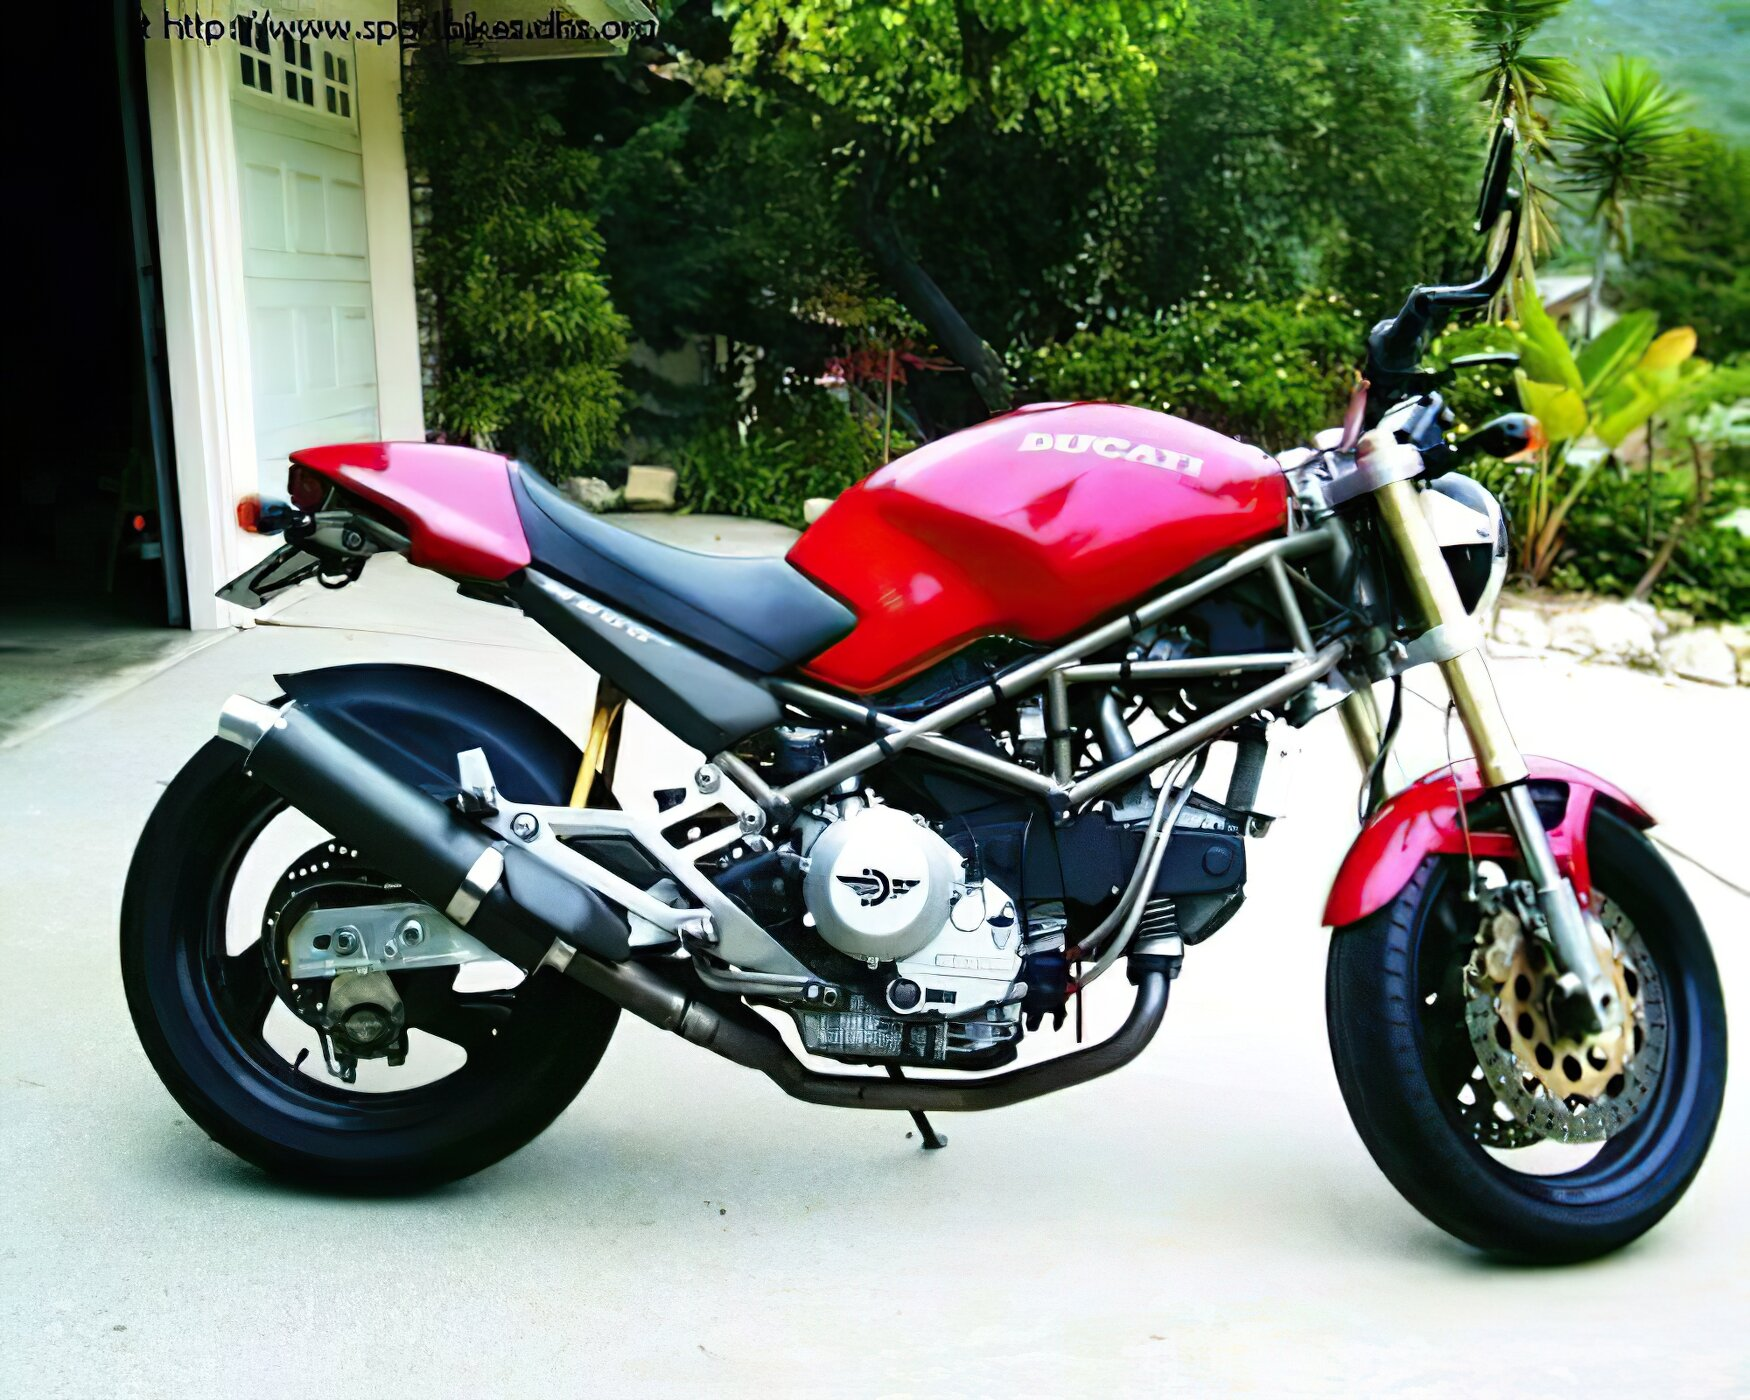 Ducati Monster Models - ID: 3529